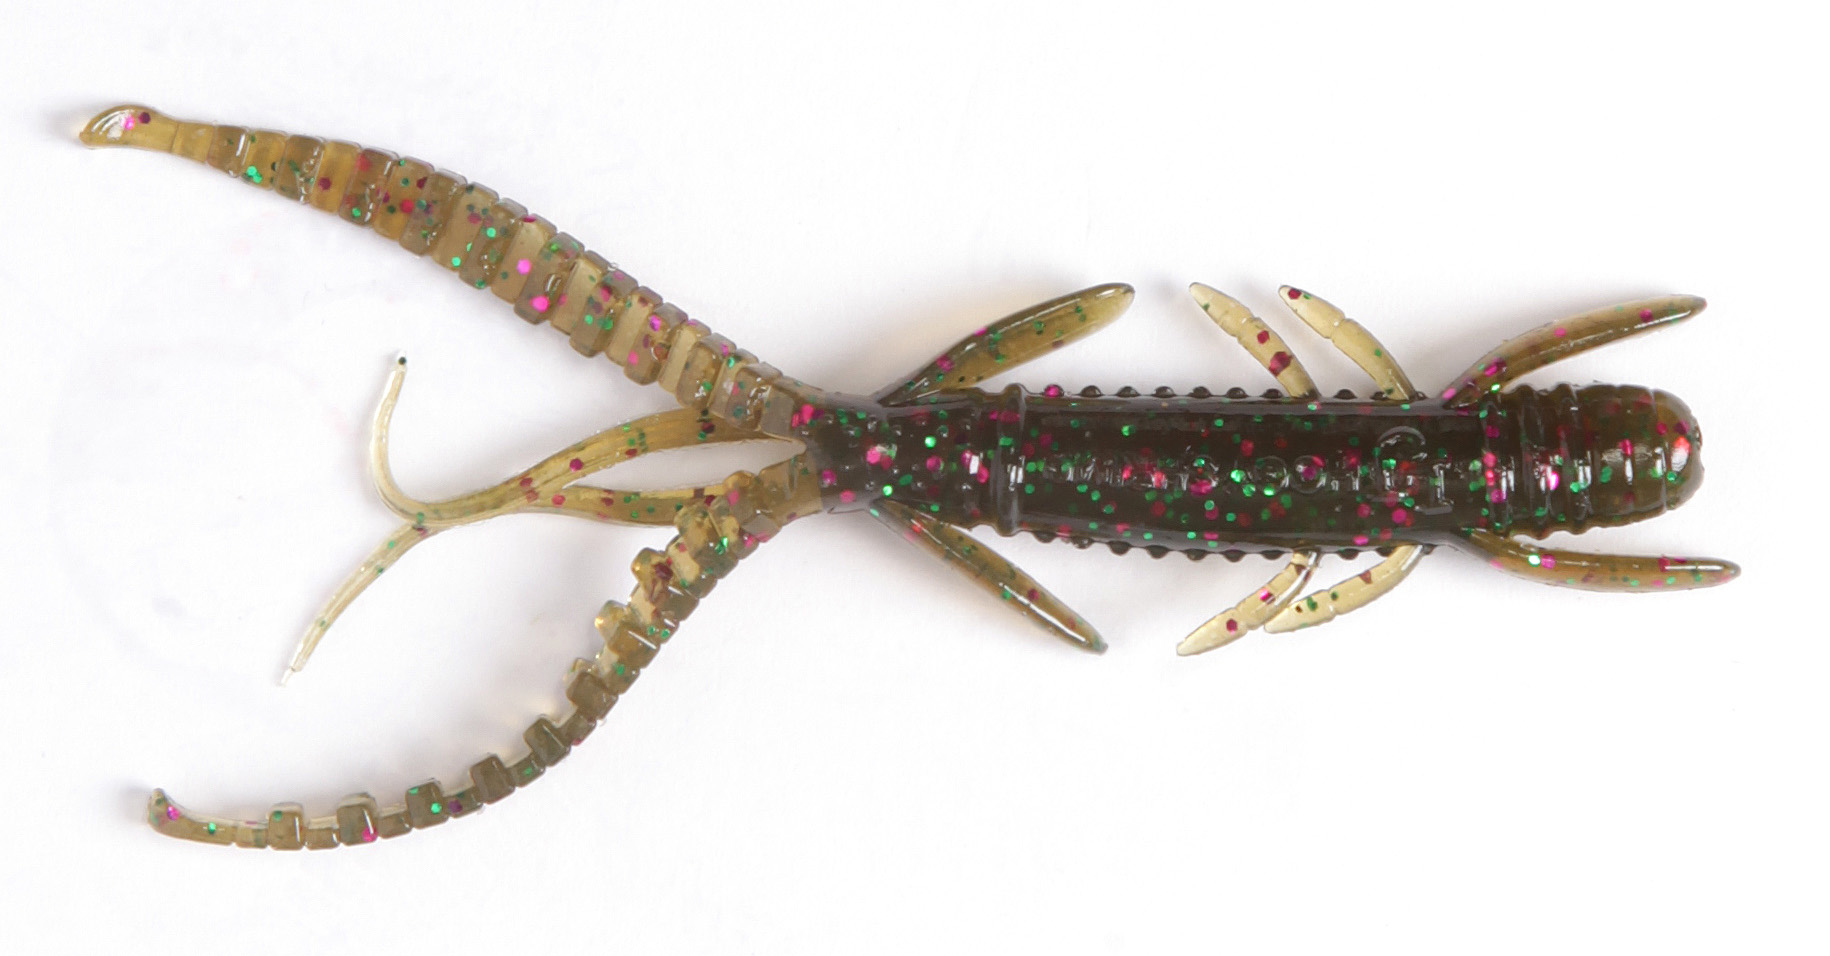 "LUCKY JOHN HOGY SHRIMP 2,2"" 1ks - All Stars Flakes"